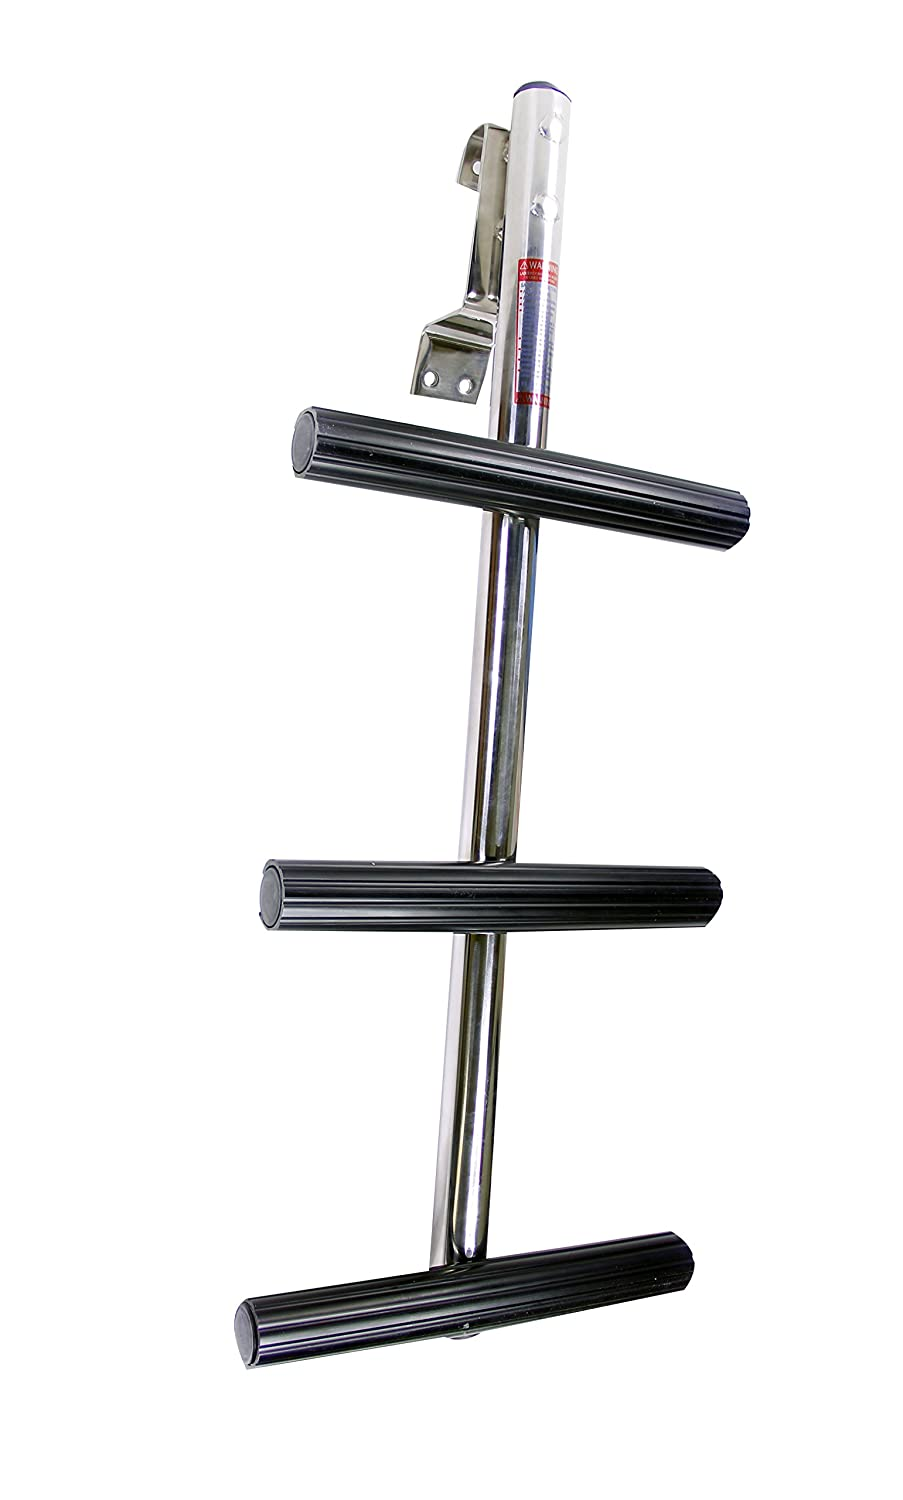 Pactrade Marine Boat Dive Ladder, Stainless Steel, 3 Step